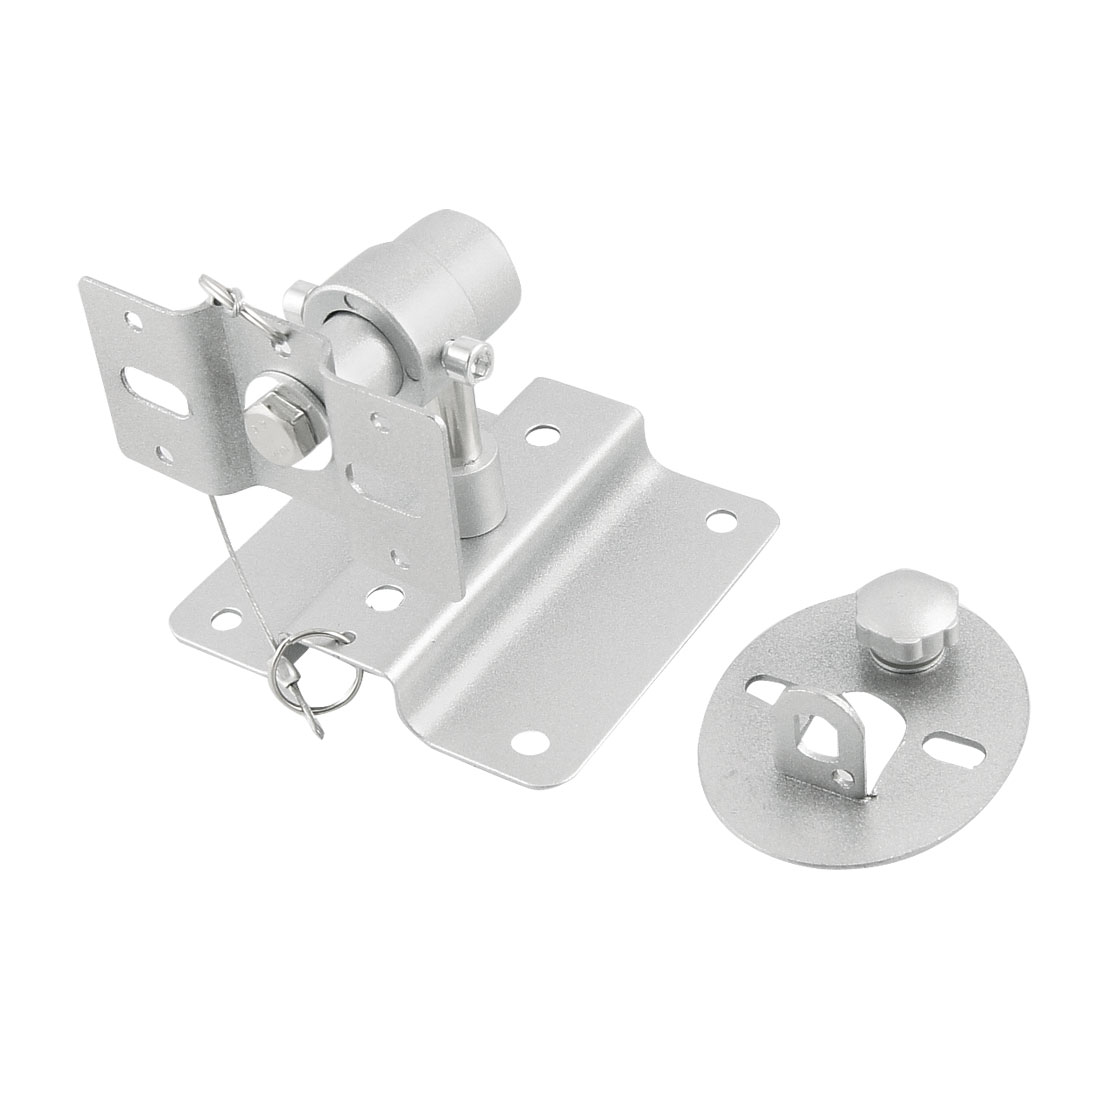 Silver Tone Metal Universal Wall Mount Speaker Bracket Set